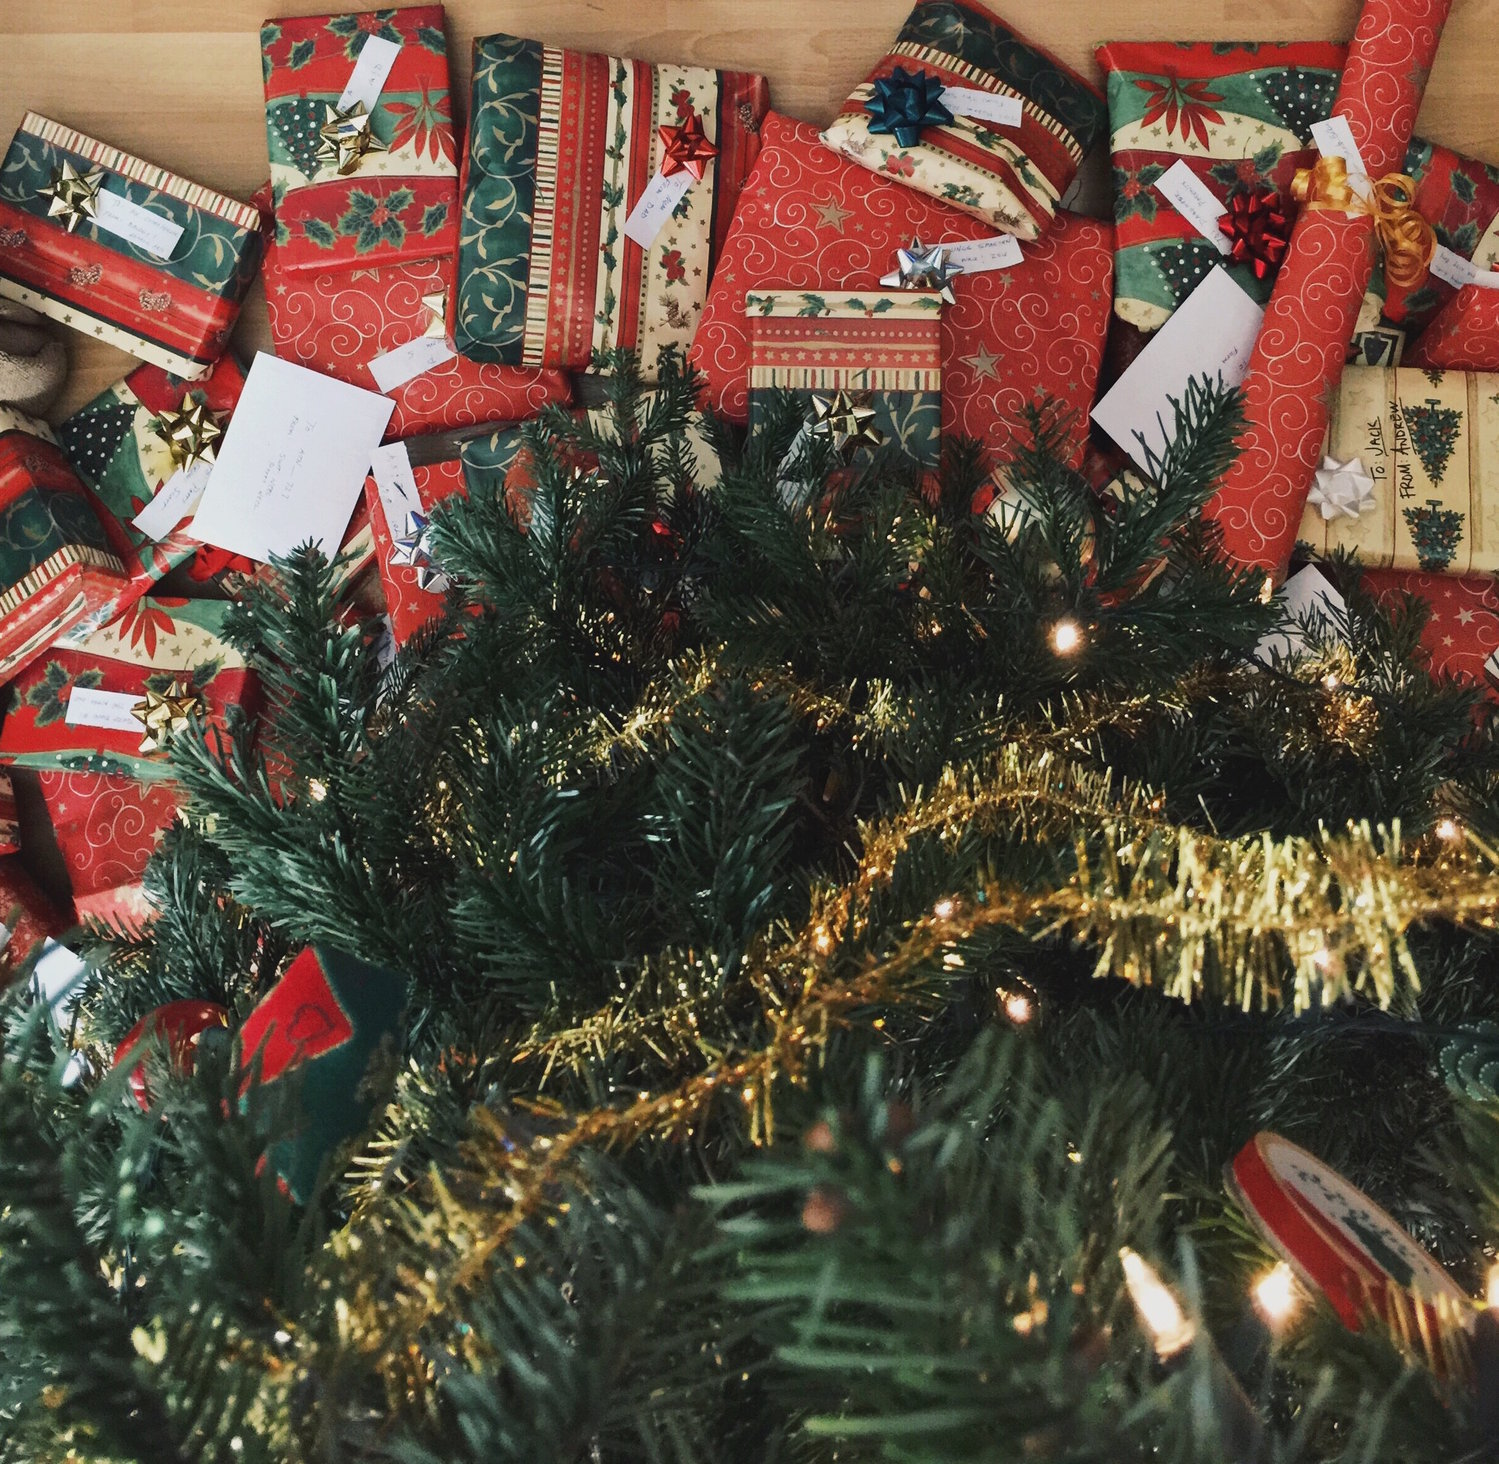 Help With Christmas Gifts.Calling All Elves To Help Collect Christmas Gifts Herald